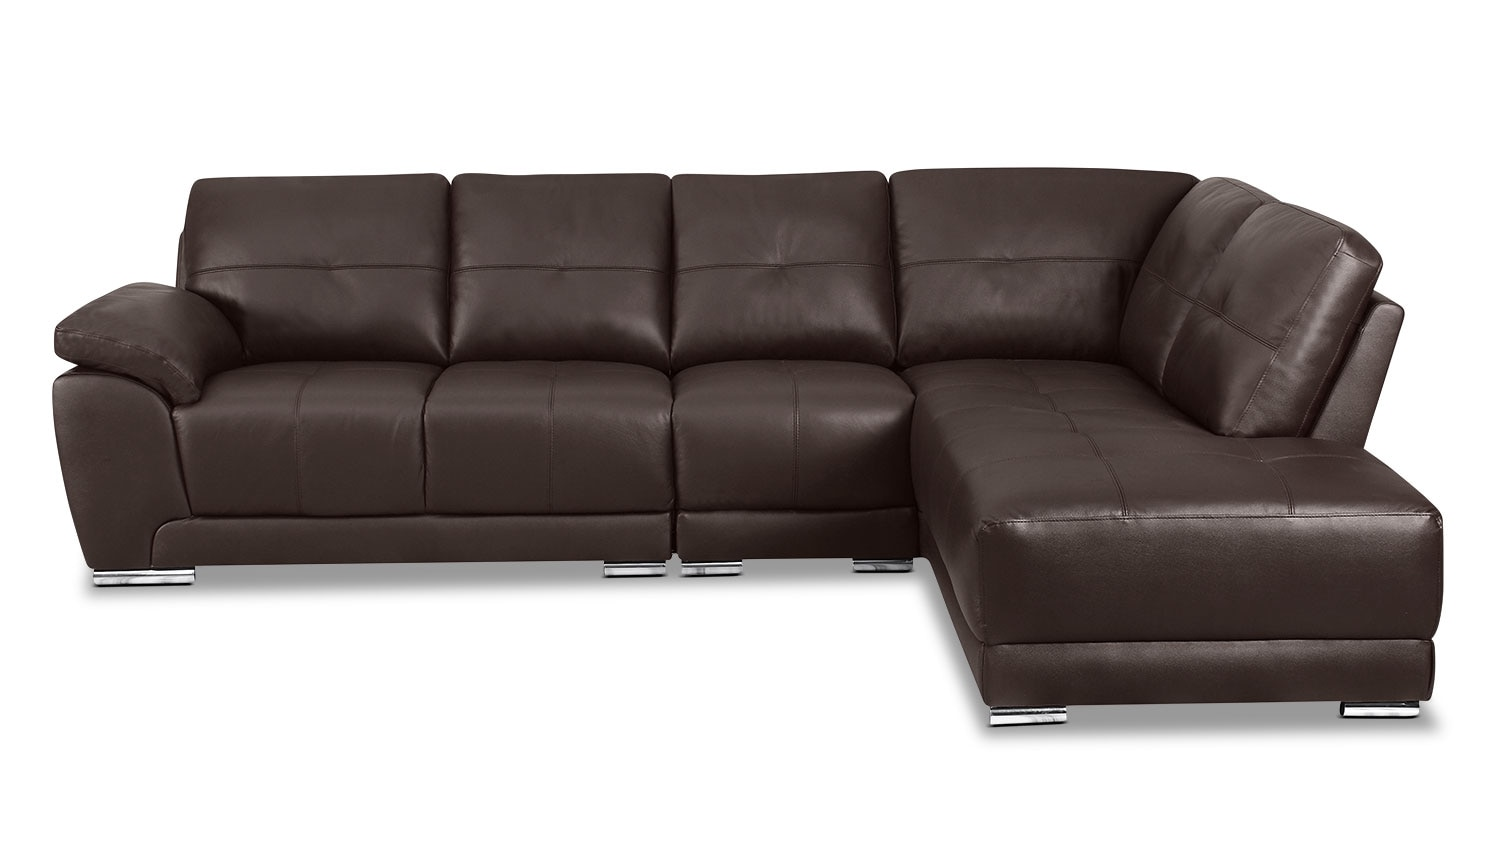 Rylee 3-Piece Genuine Leather Right-Facing Sectional - Brown